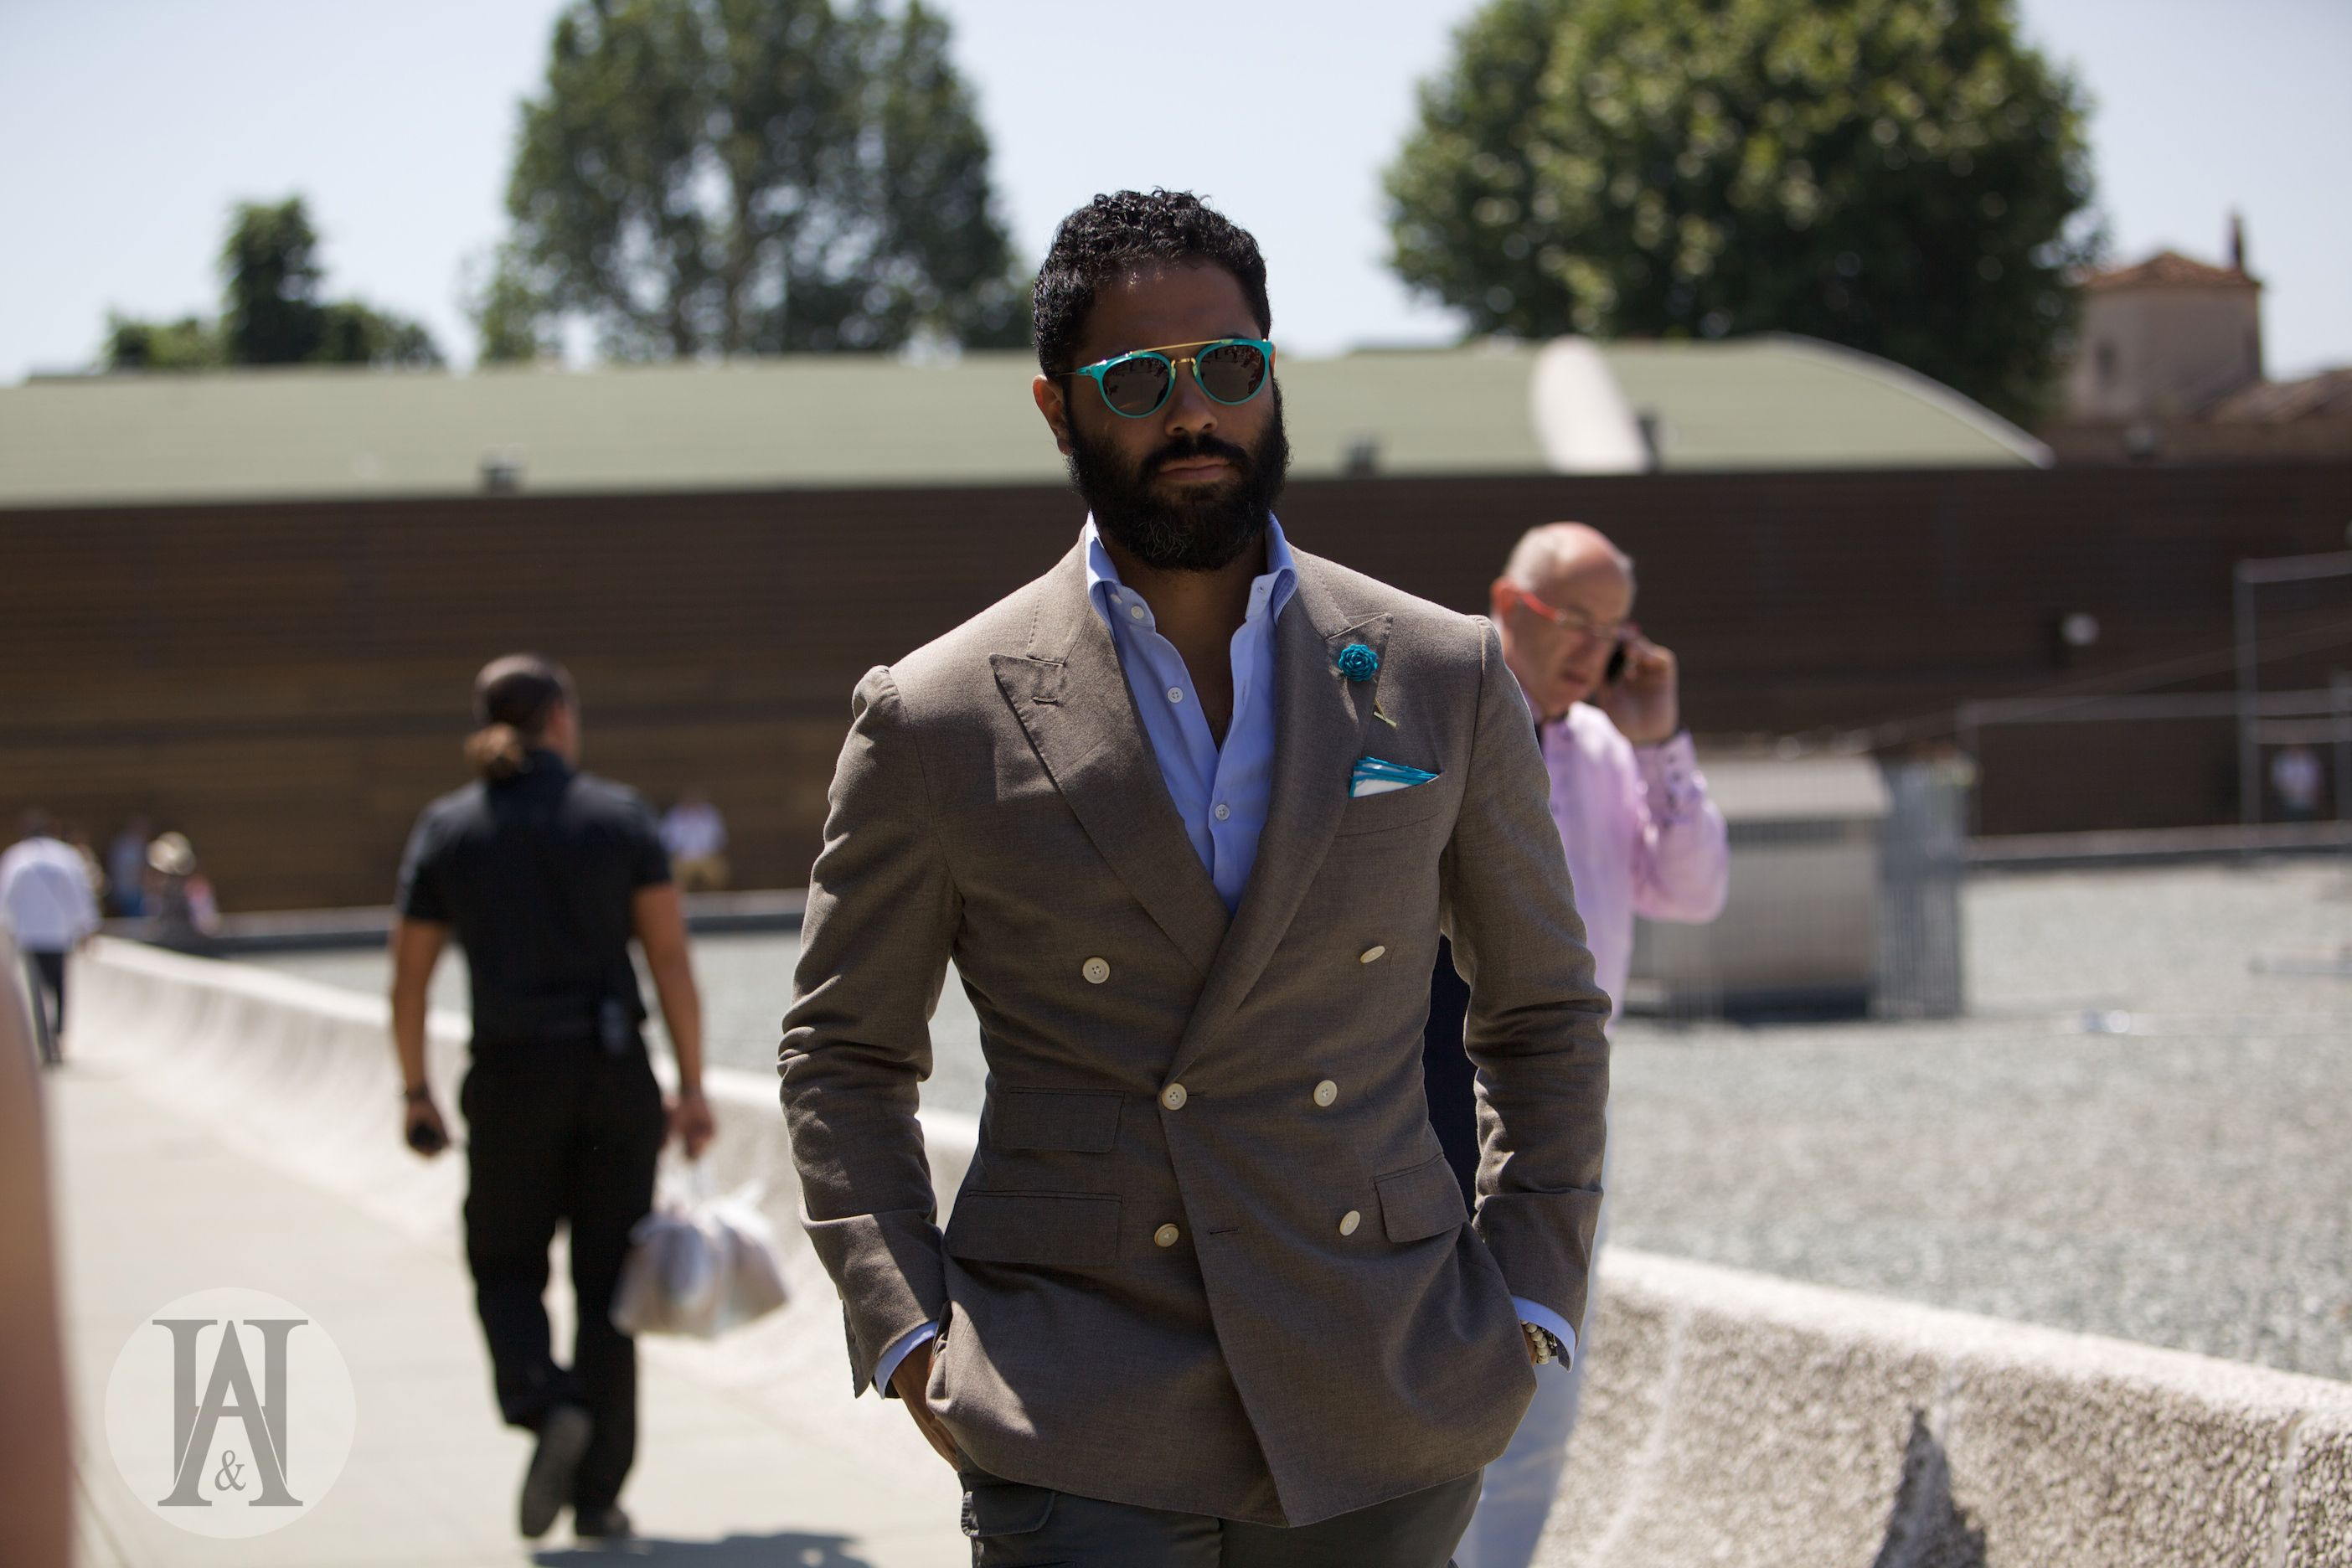 Pitti uomo button double breasted summer suit wedding suits